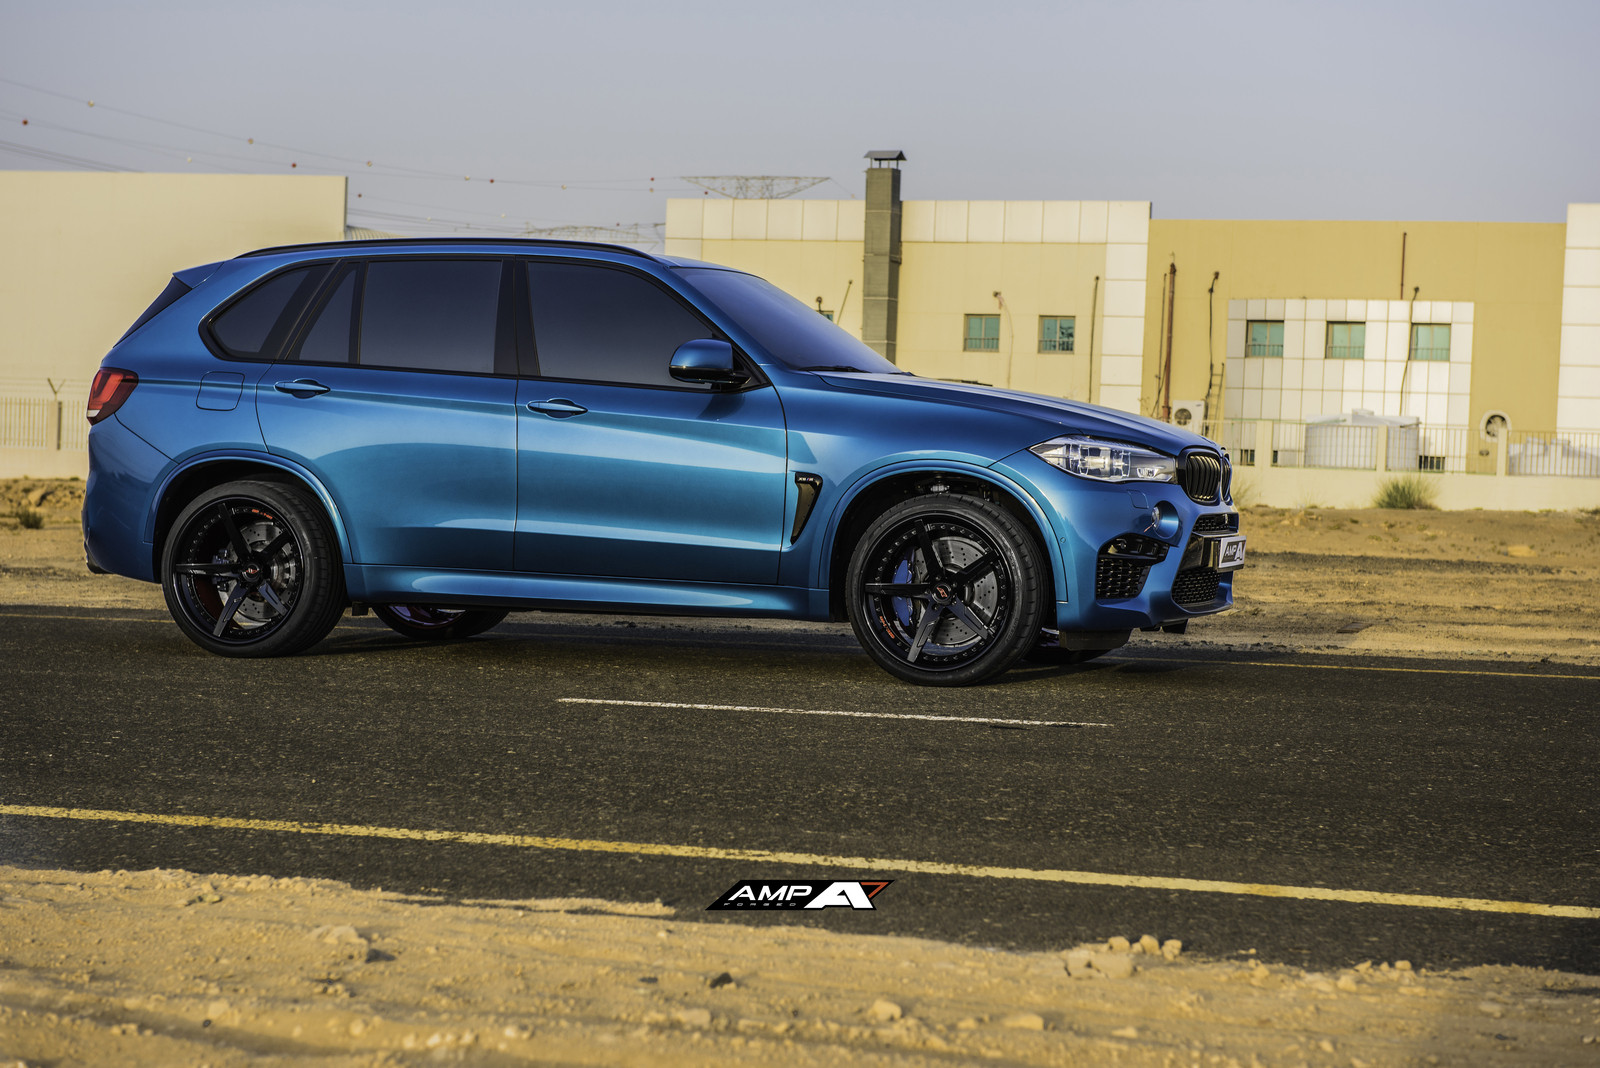 Compare Bmw X3 And X5 >> 2016 BMW X5M F85 on 22 inch AMP-5 Forged Wheels